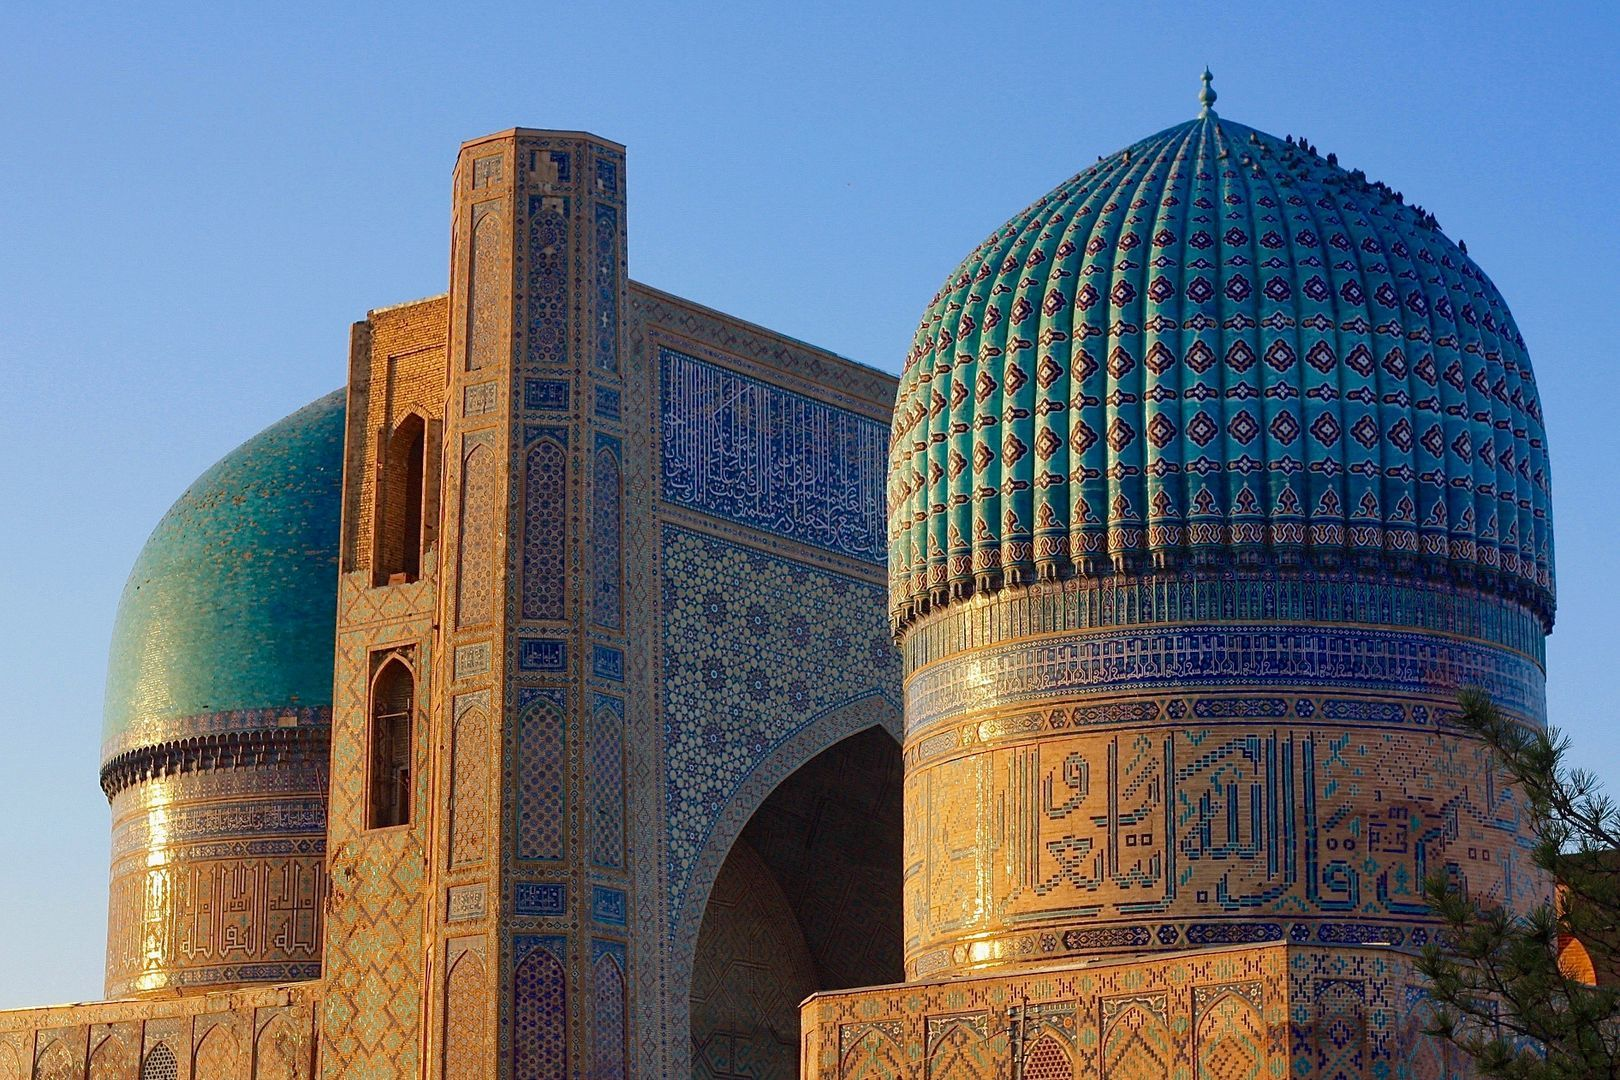 Timurid architecture blue domes in Silk Road in Central Asia